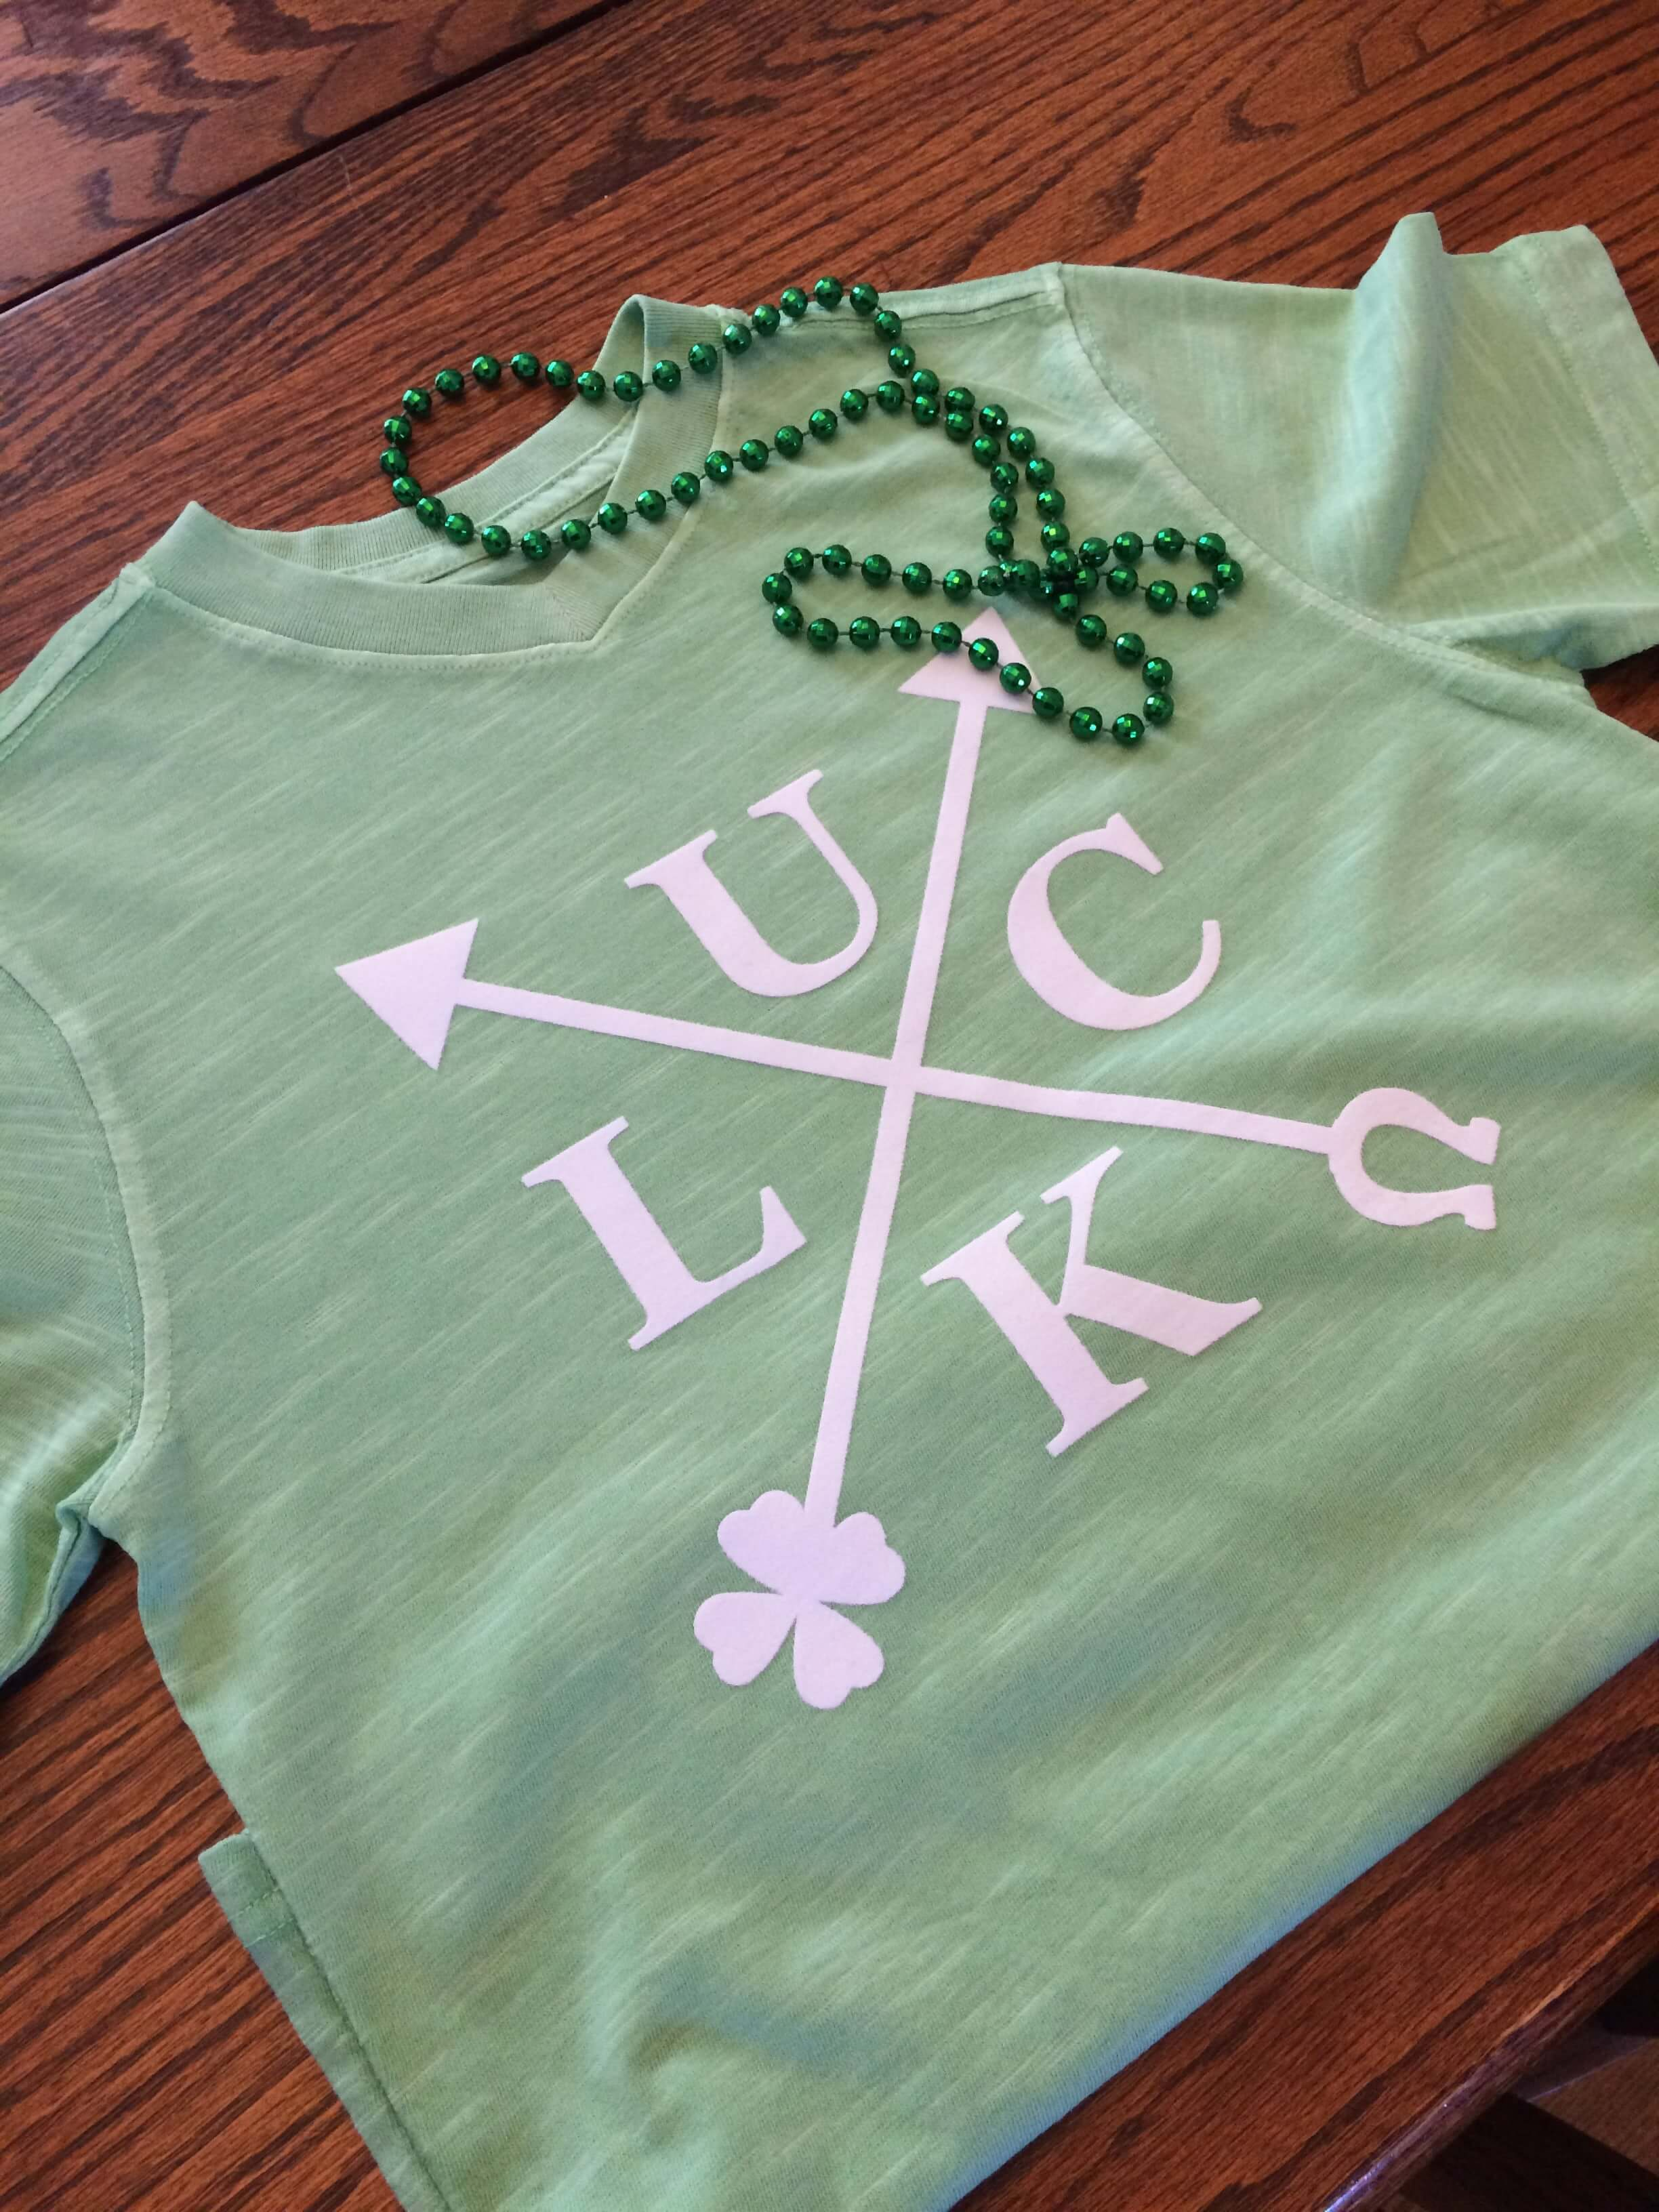 Luck T-Shirt - use criss cross arrow design to make a themed shirt for St. Patrick's Day or showcase your favorite four letter word!